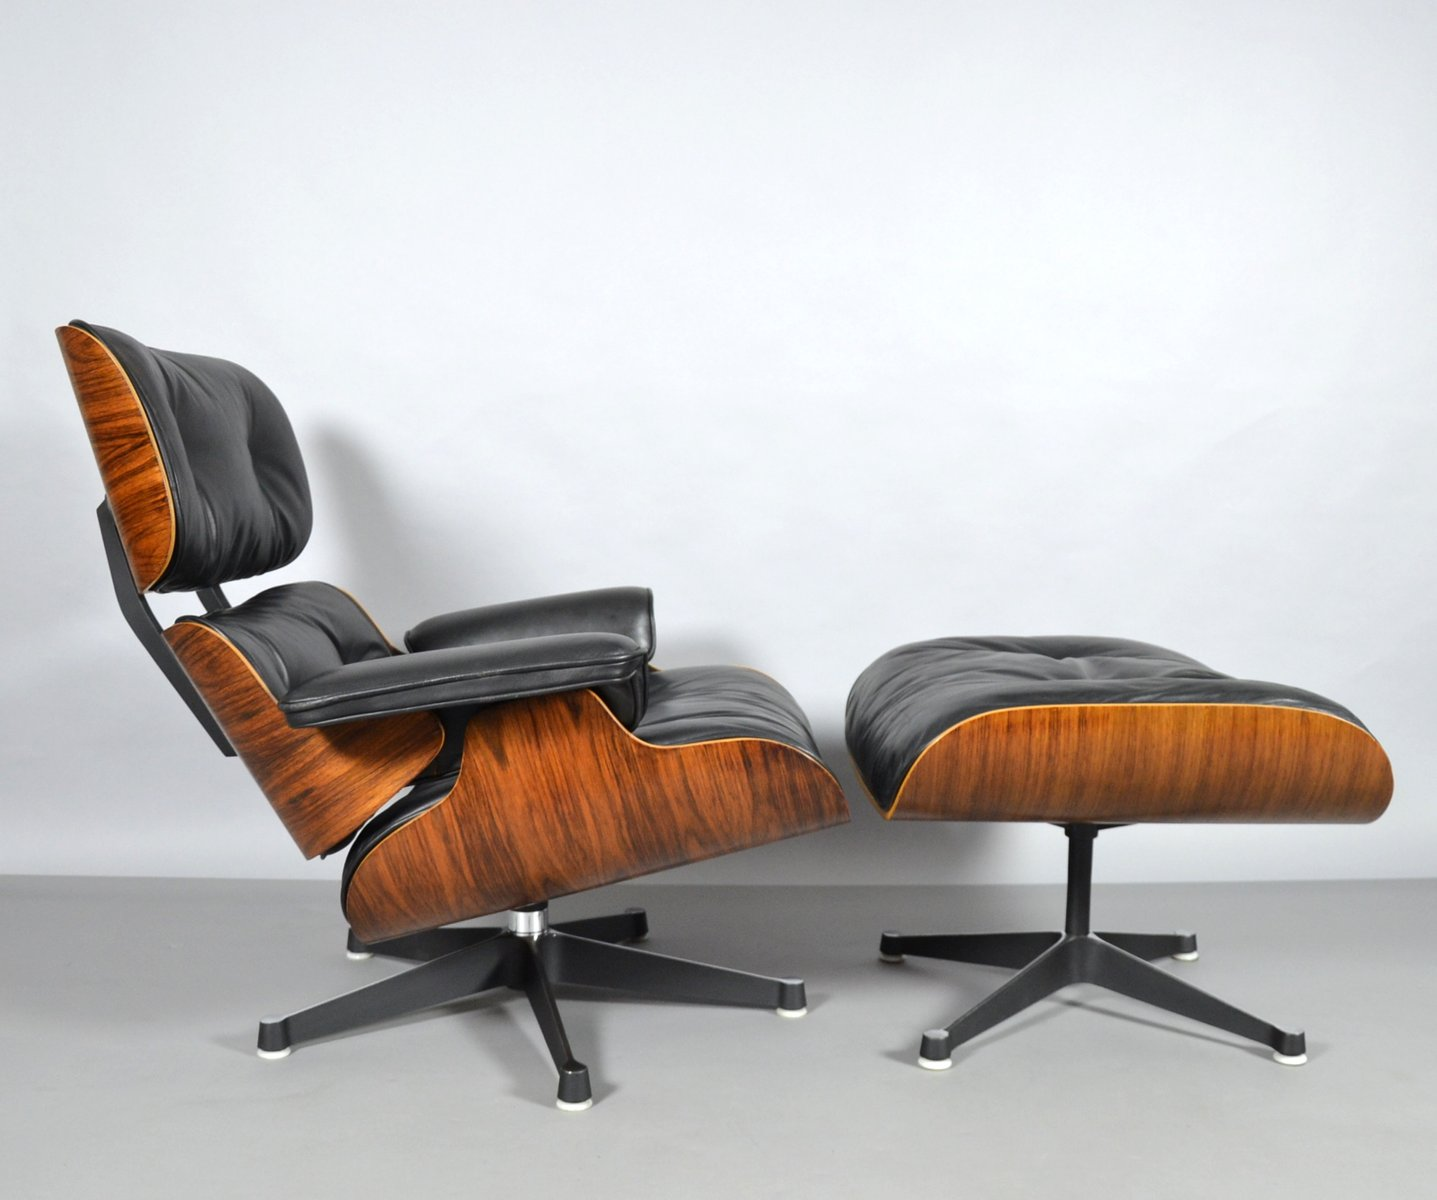 Eames Sessel Vitra Lounge Chair Ottoman By Charles Ray Eames For Vitra 1960s